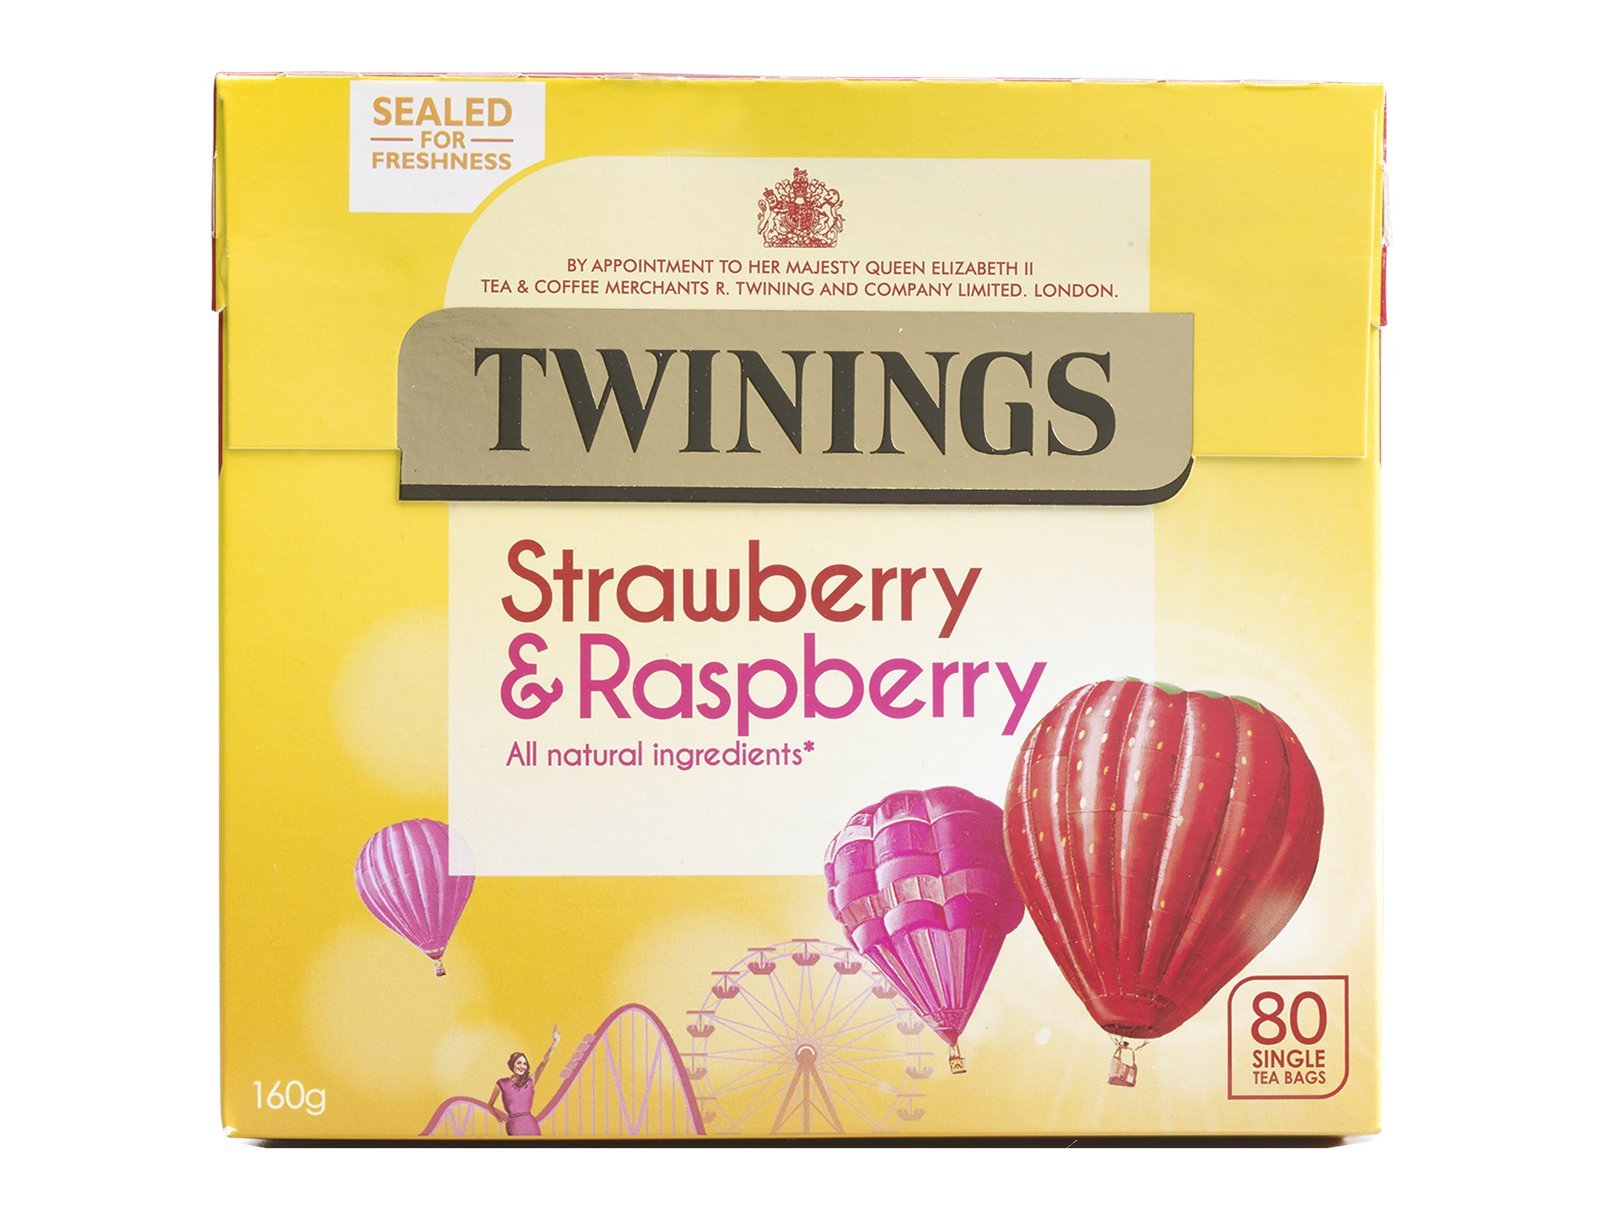 Twinings Strawberry & Raspberry 80 Tea Bags Sugar Free, All Natural Ingredients